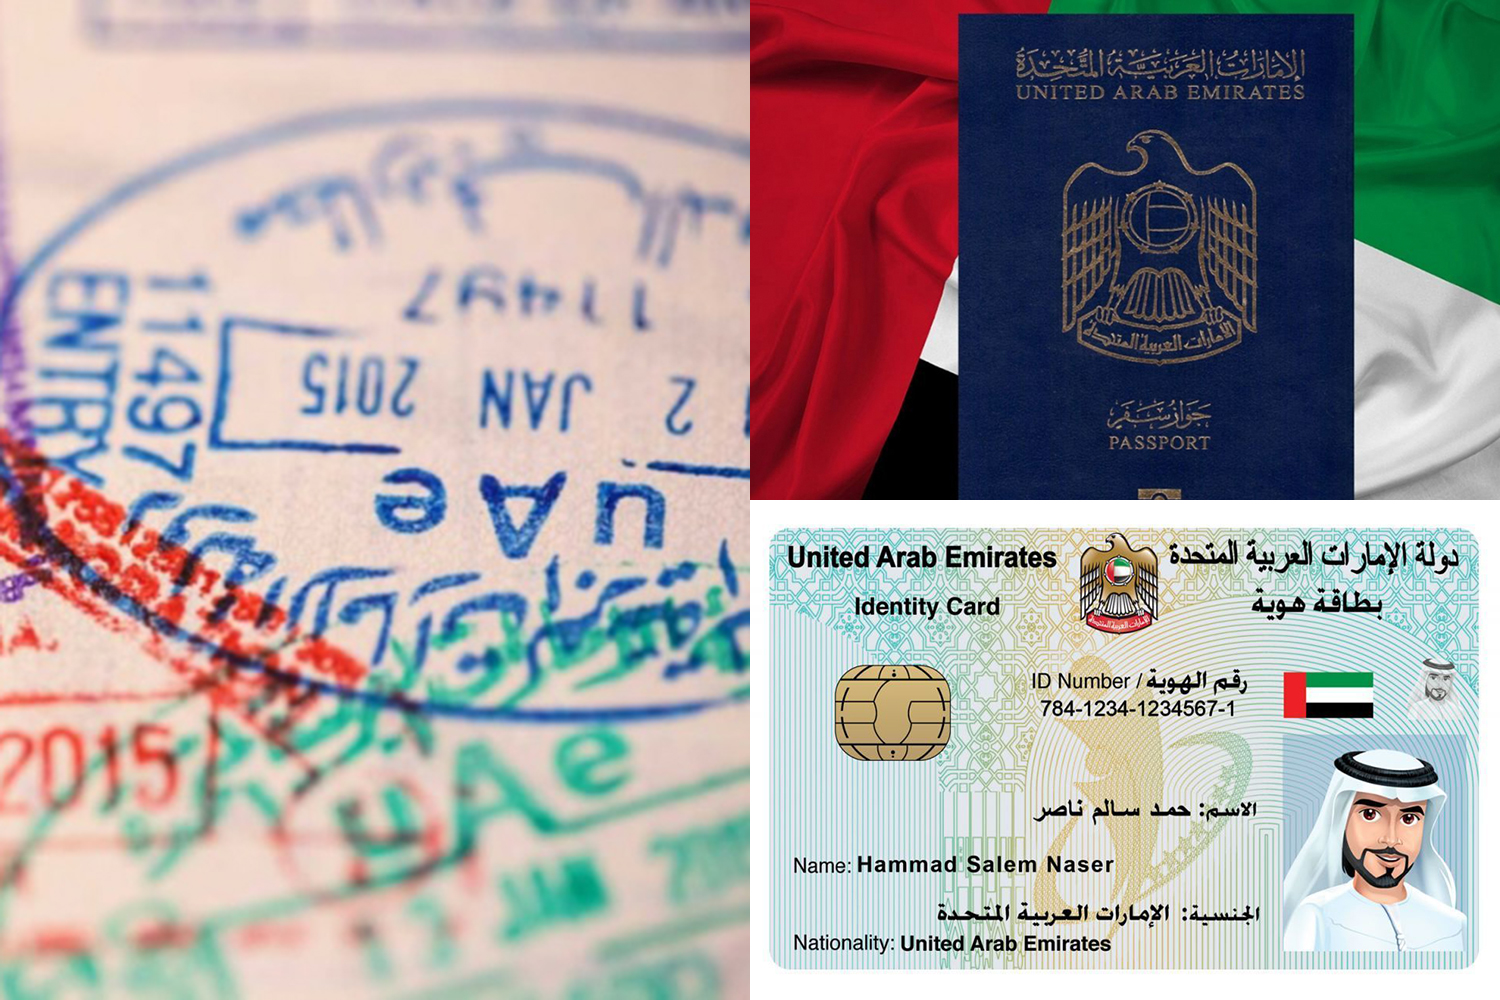 Uae Cabinet To Renew Uae Residency Visas And Emirates Ids Free Of Charge News Time Out Abu Dhabi